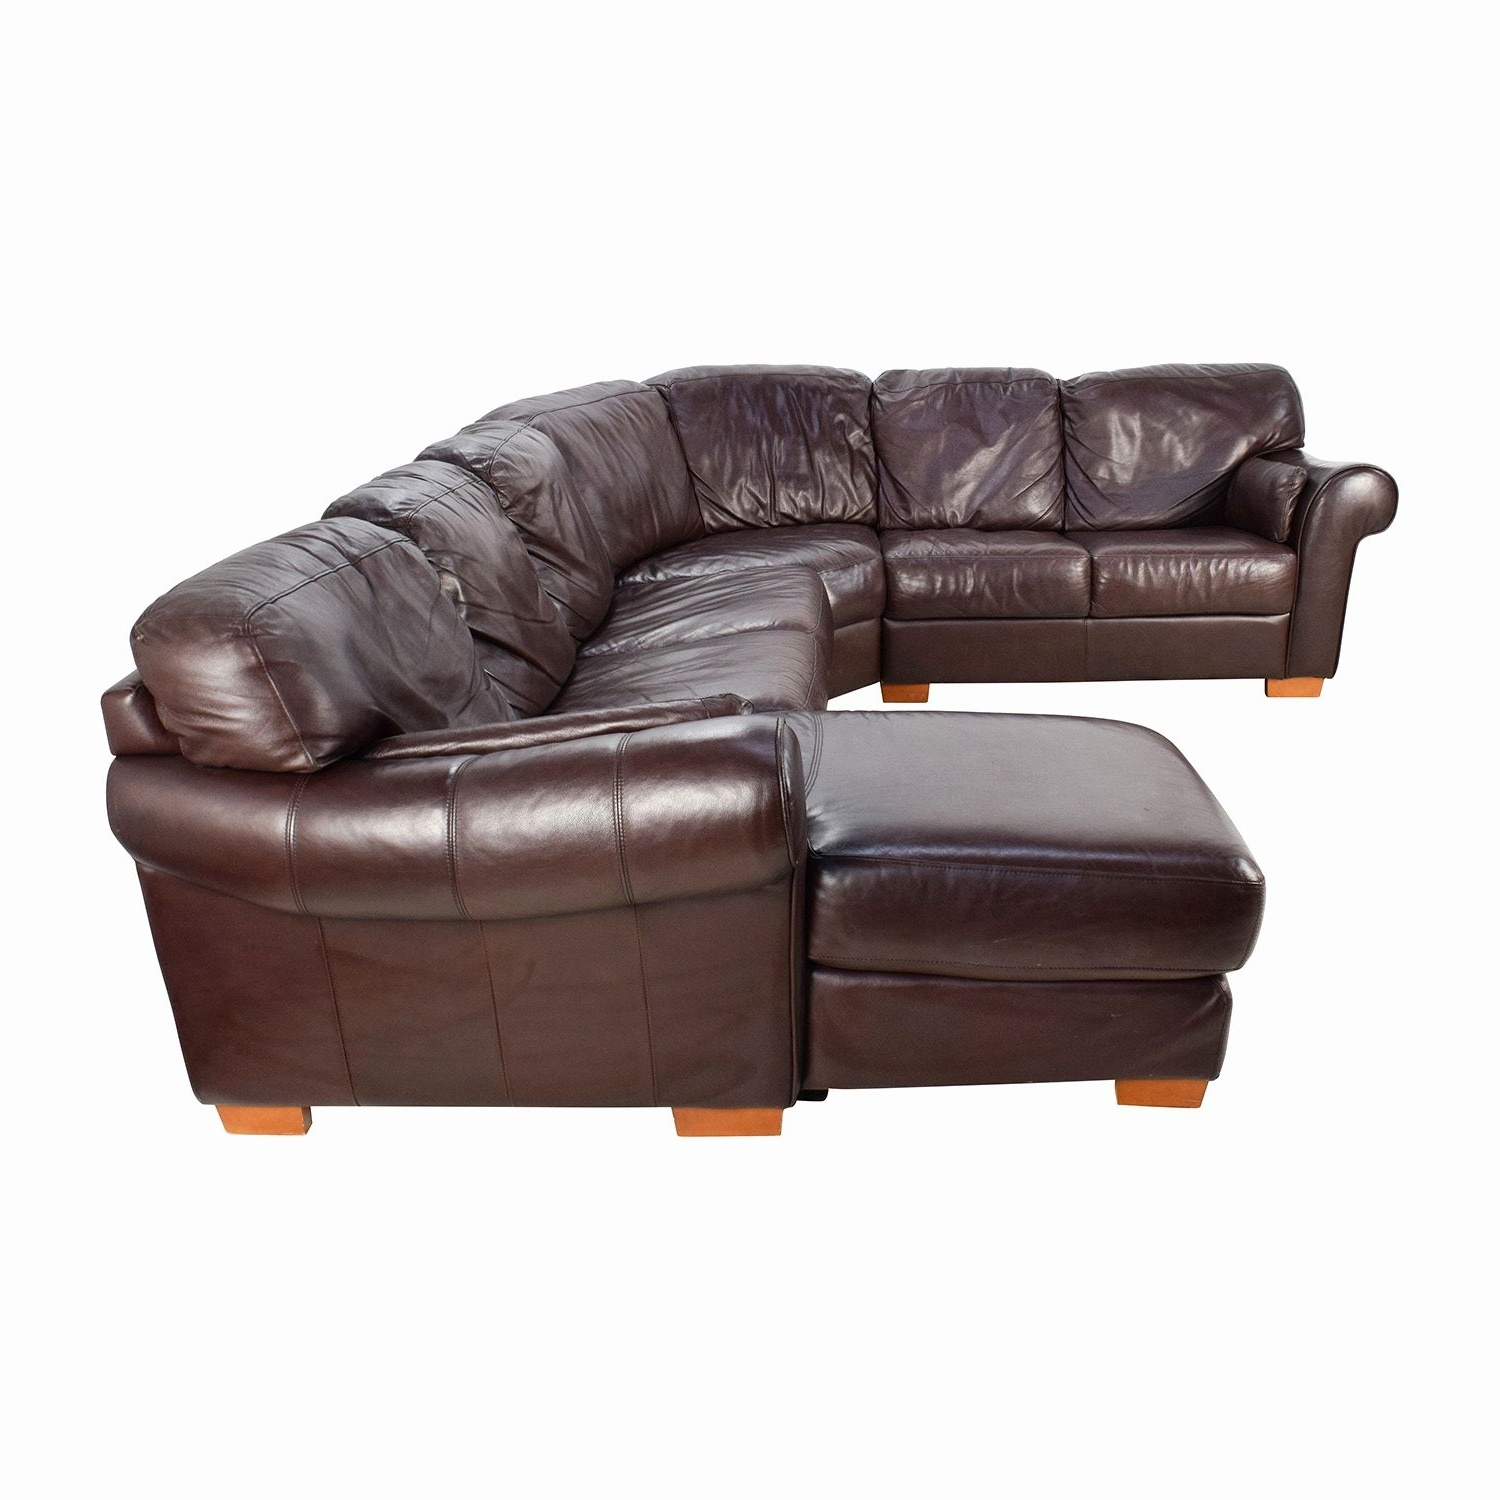 Raymour And Flanigan Sectional Sofas Throughout Well Known Appealing Raymour And Flanigan Sectional Sofas U Couches For Chair (View 7 of 20)